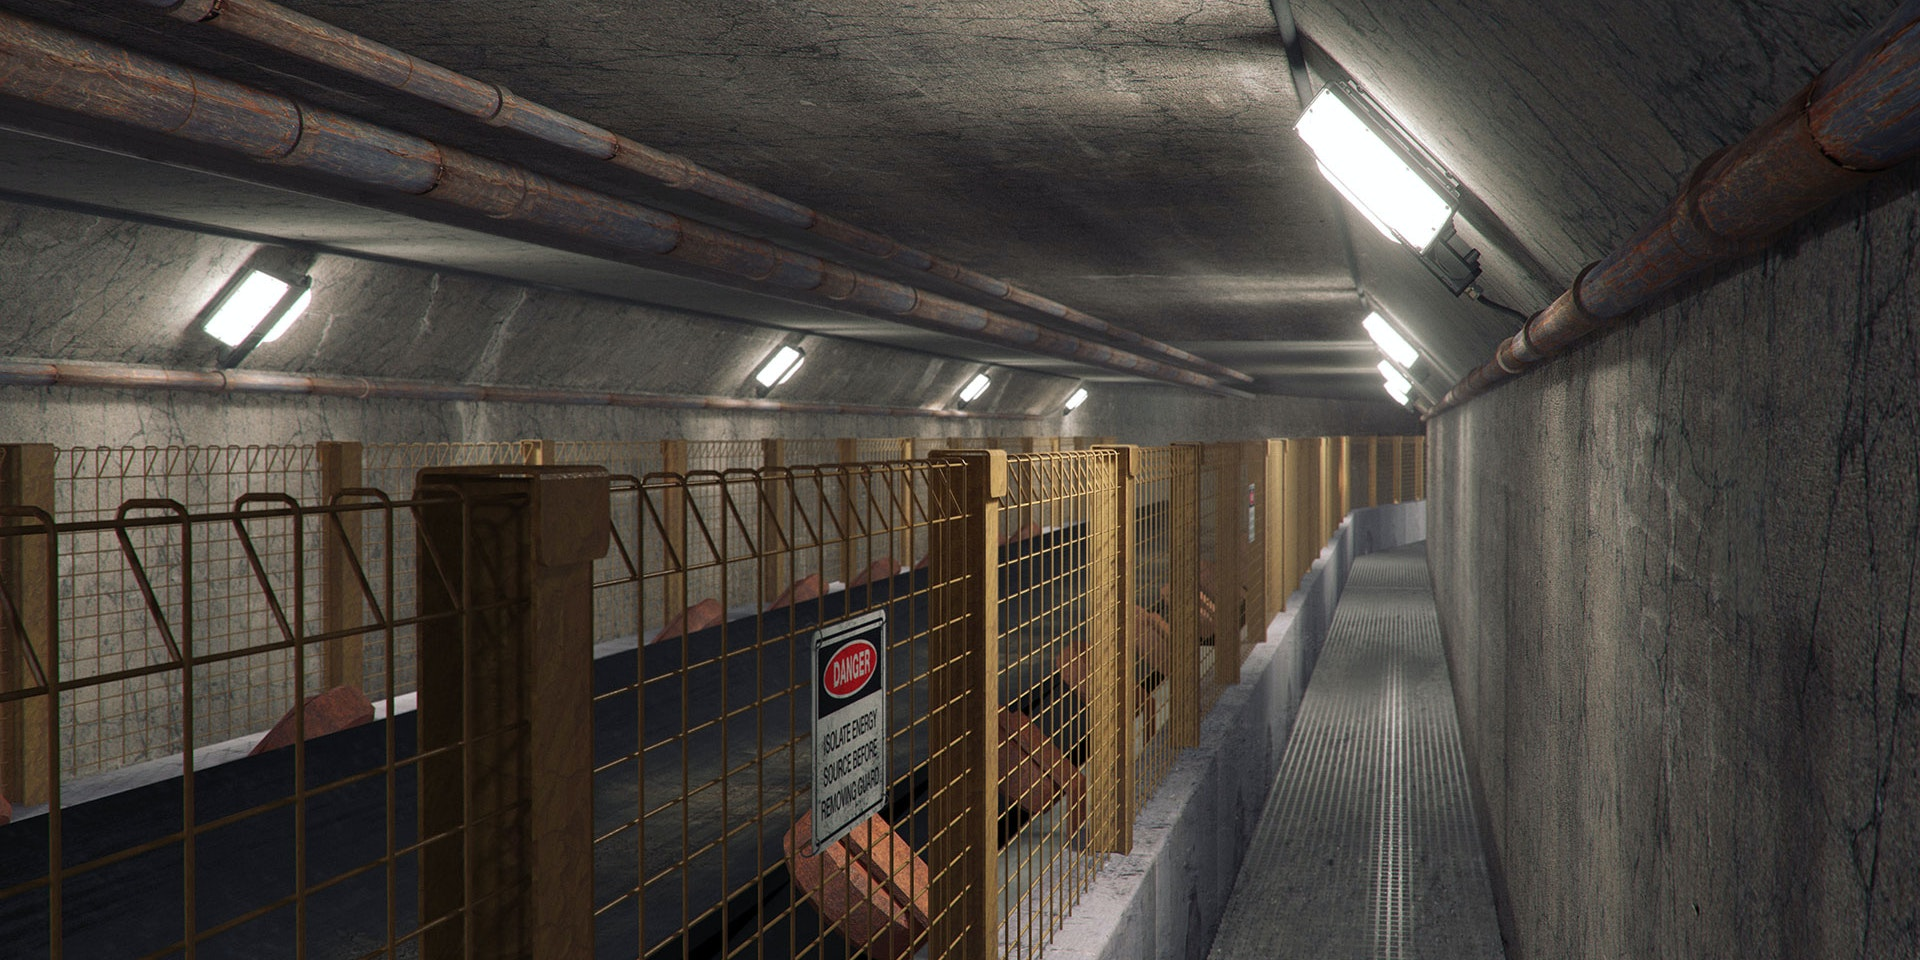 Tunnel Ray LED Tunnel / Low Profile Light in application, installed on an underground conveyor tunnel